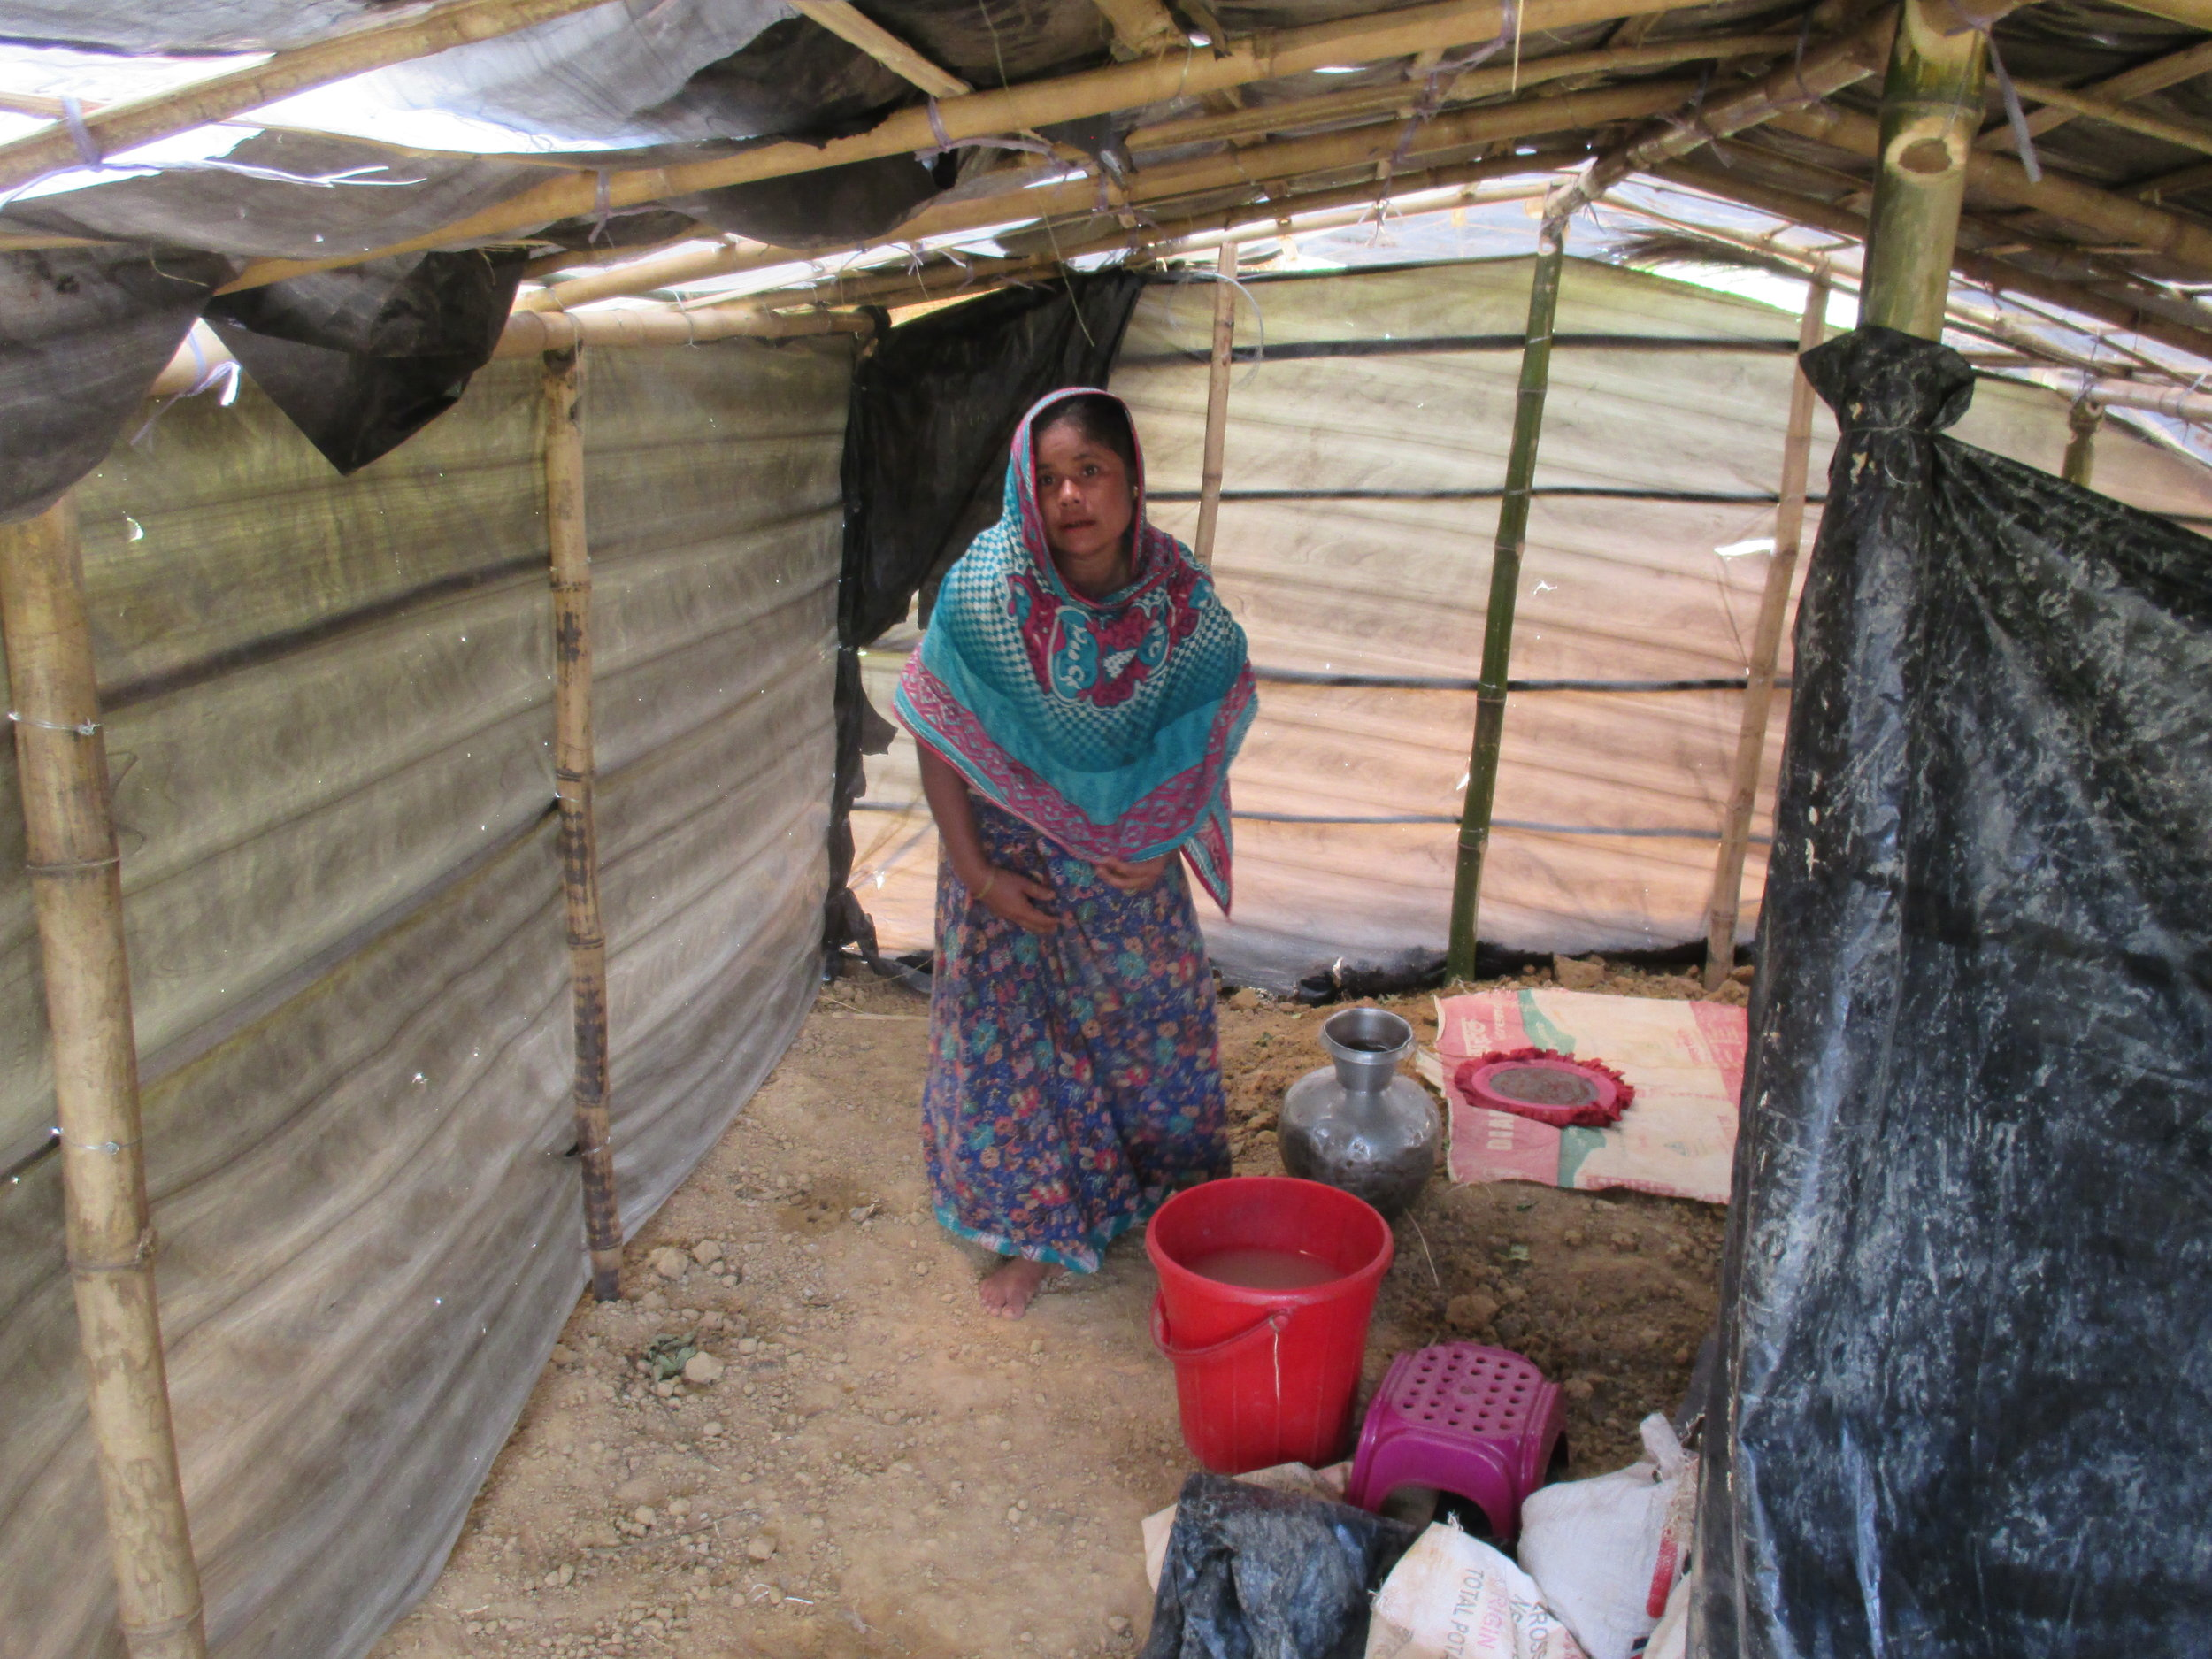 Halima*, 40, arrived at Kutupalong makeshift settlement with her five children just days before RI met with her. Neighbors helped her build this shelter, nearly uninhabitable during the extreme daytime heat and vulnerable to the heavy winds of the monsoon season.